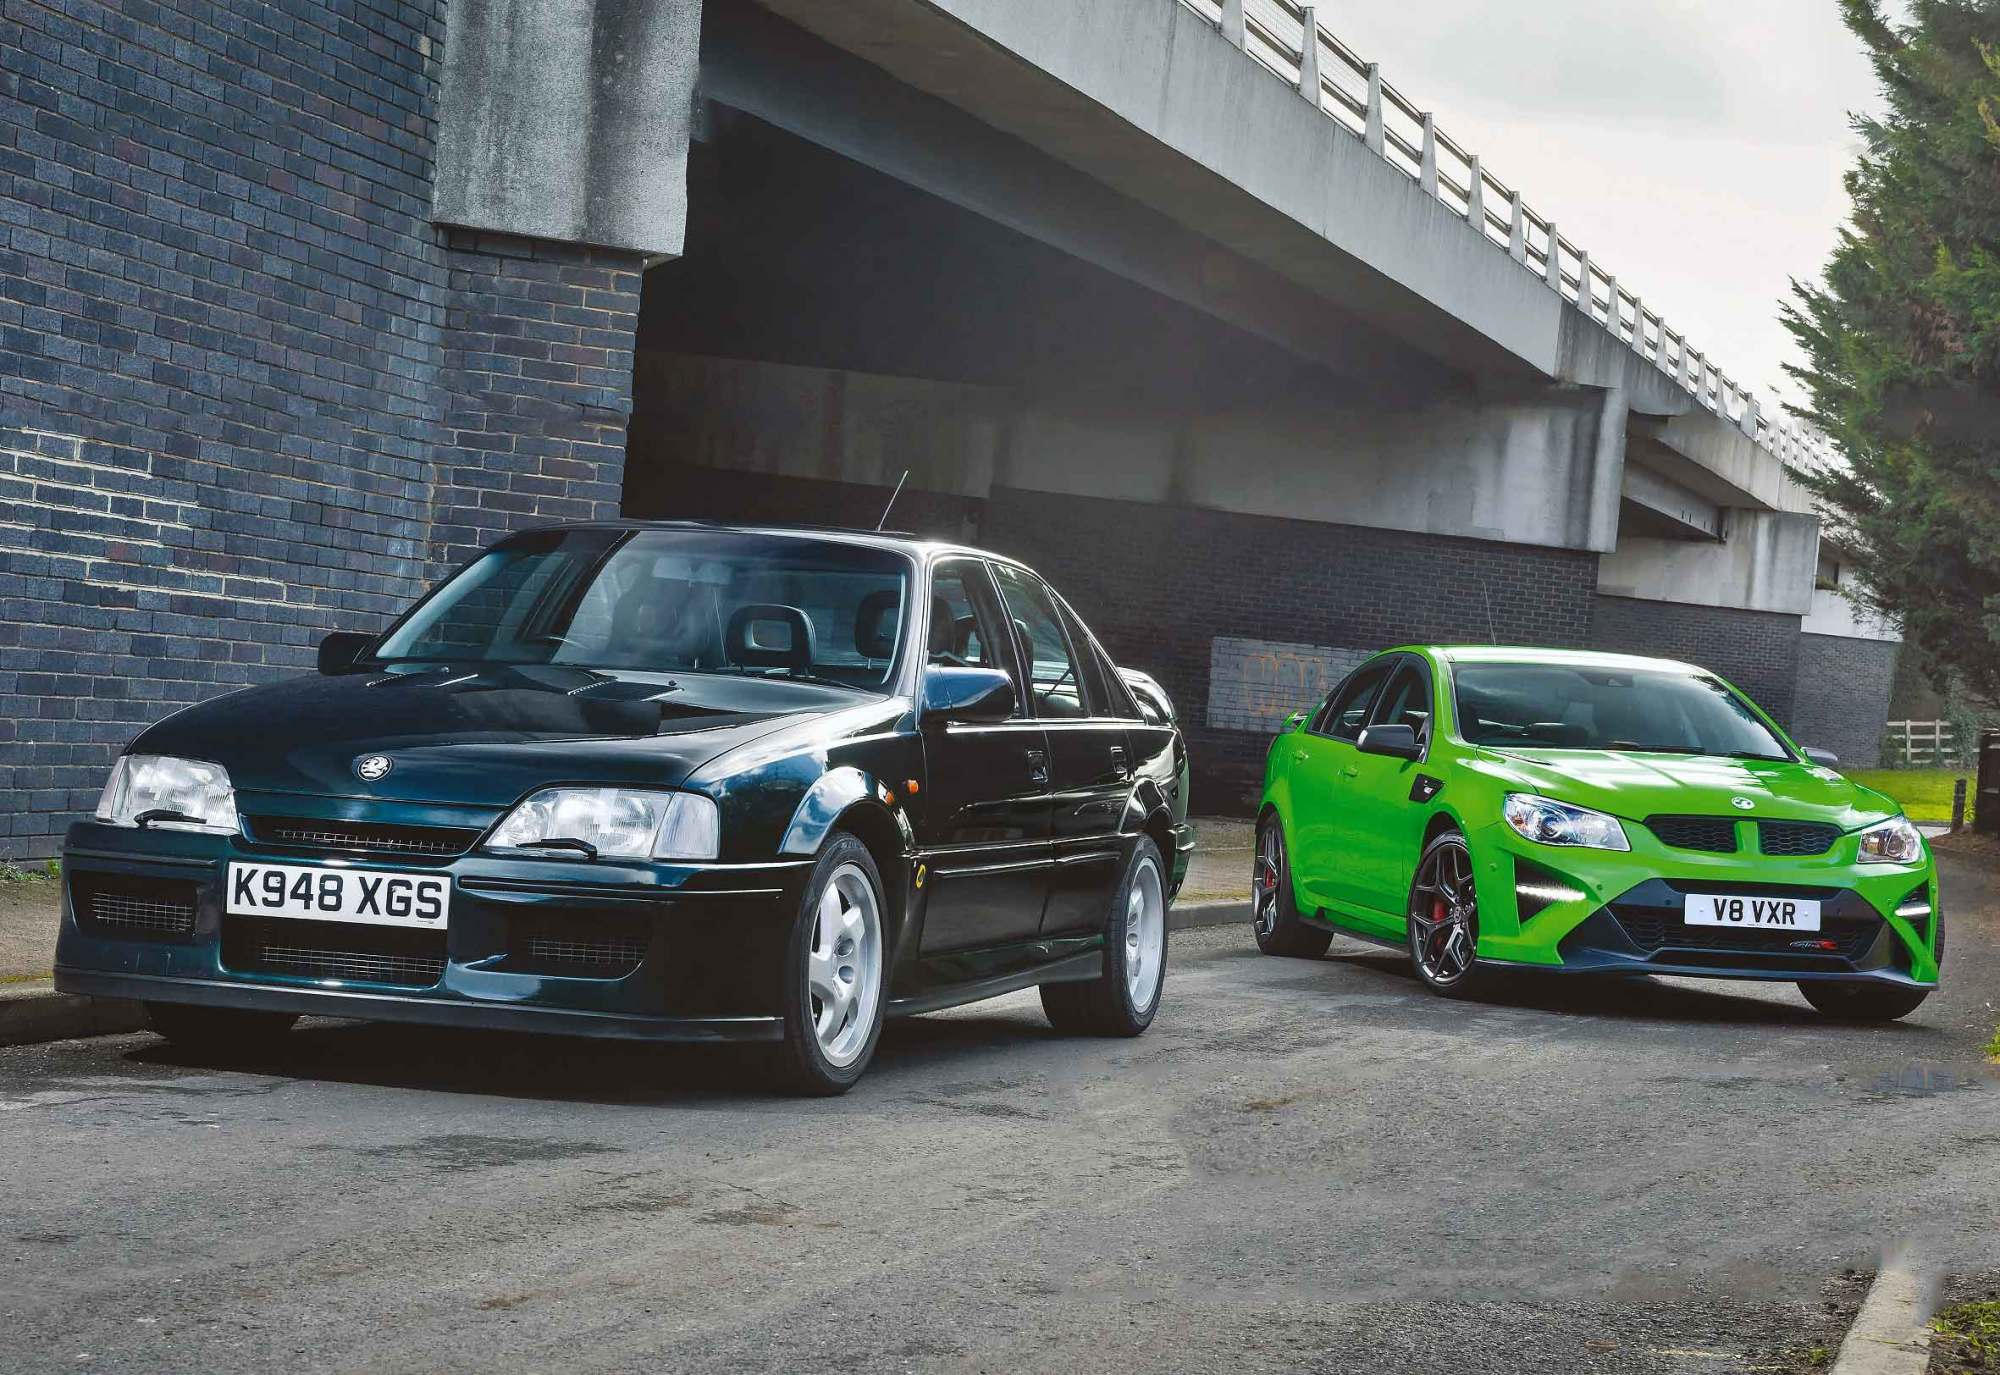 hight resolution of back to the future vauxhall lotus carlton vs vxr8 gts r